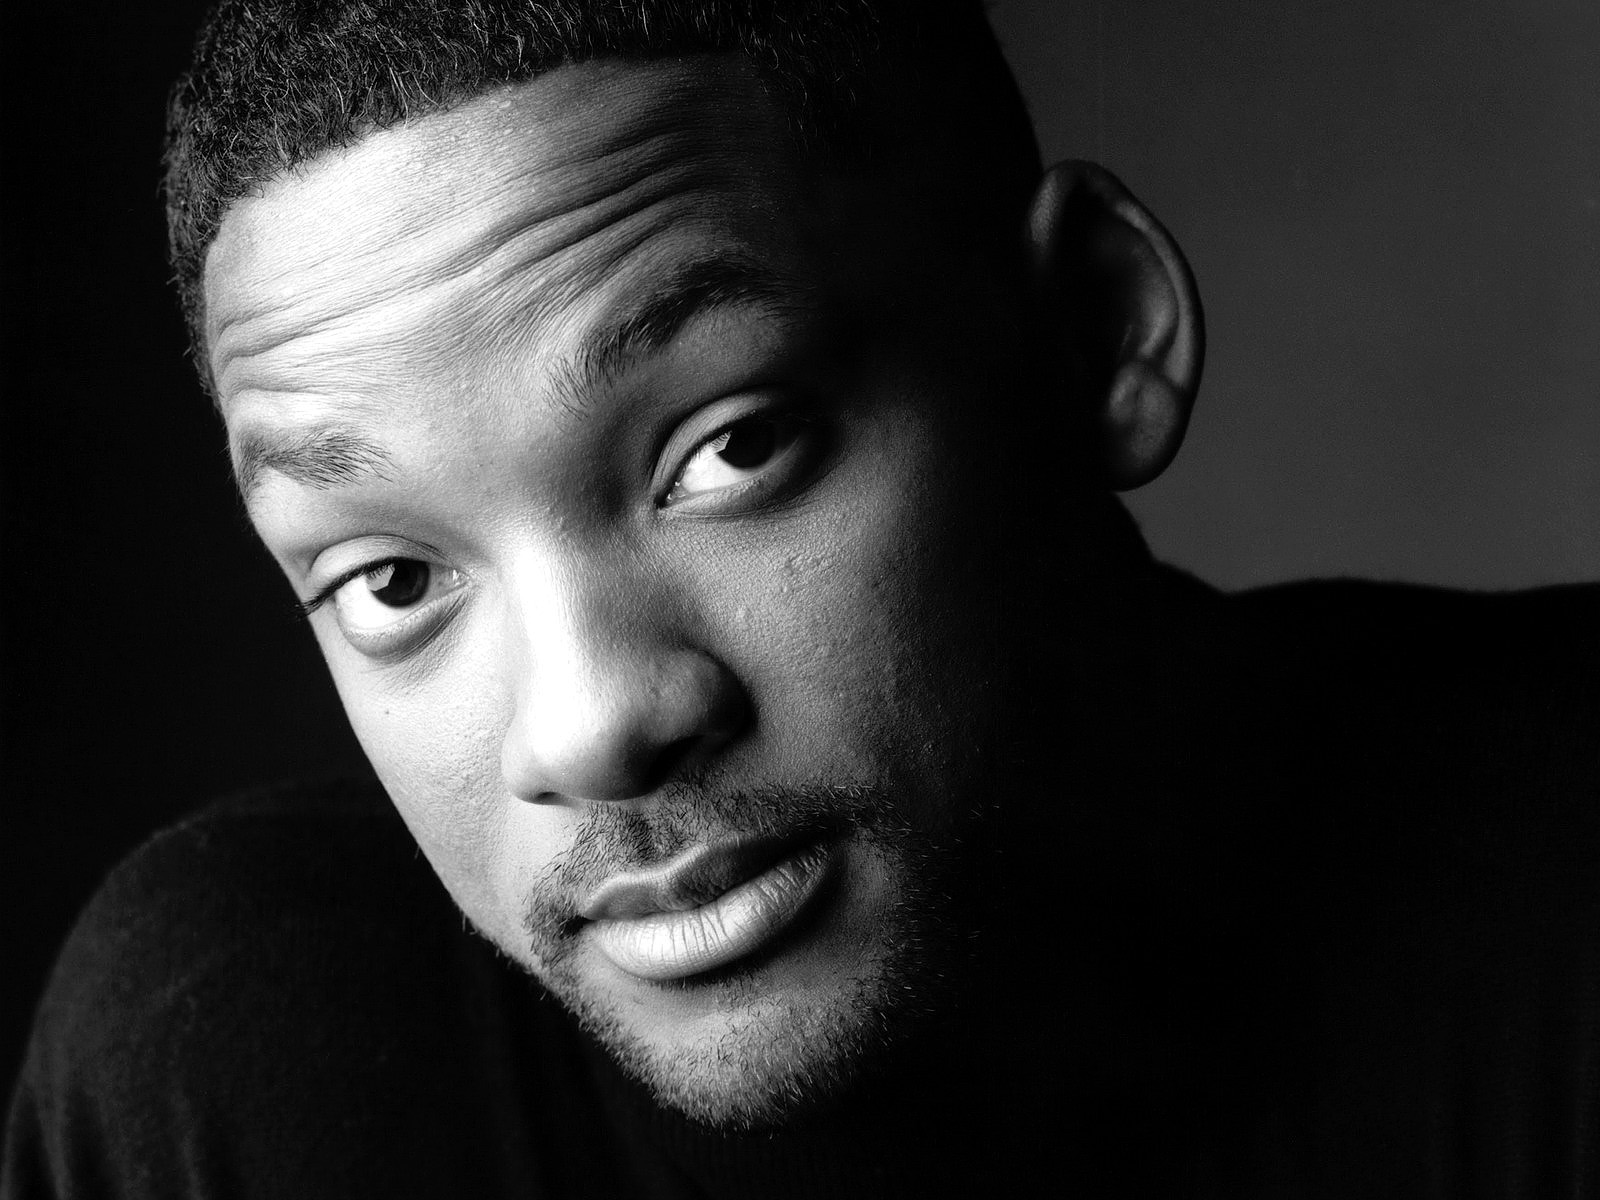 1600x1200 - Will Smith Wallpapers 31